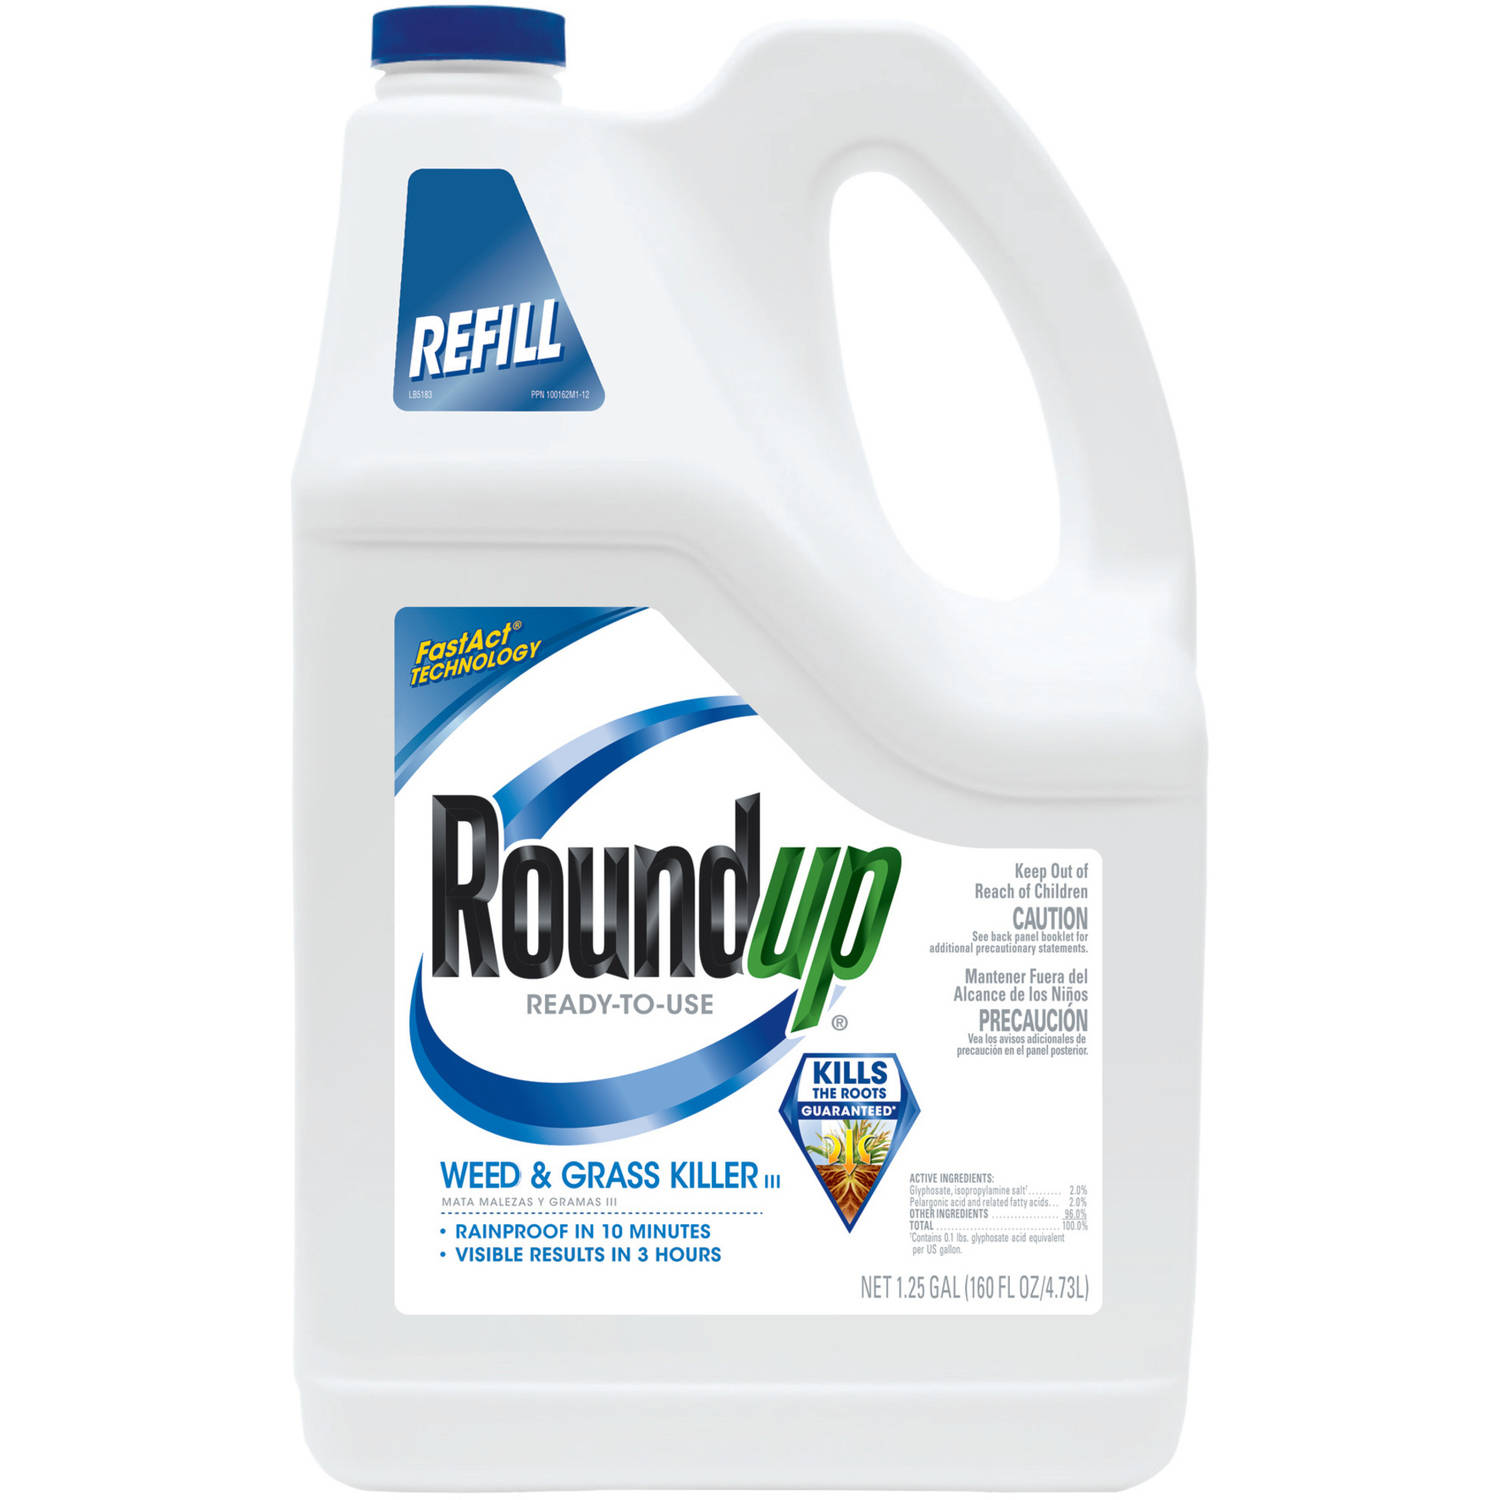 Roundup Ready-To-Use Weed & Grass Killer III Refill, 1.25 gal